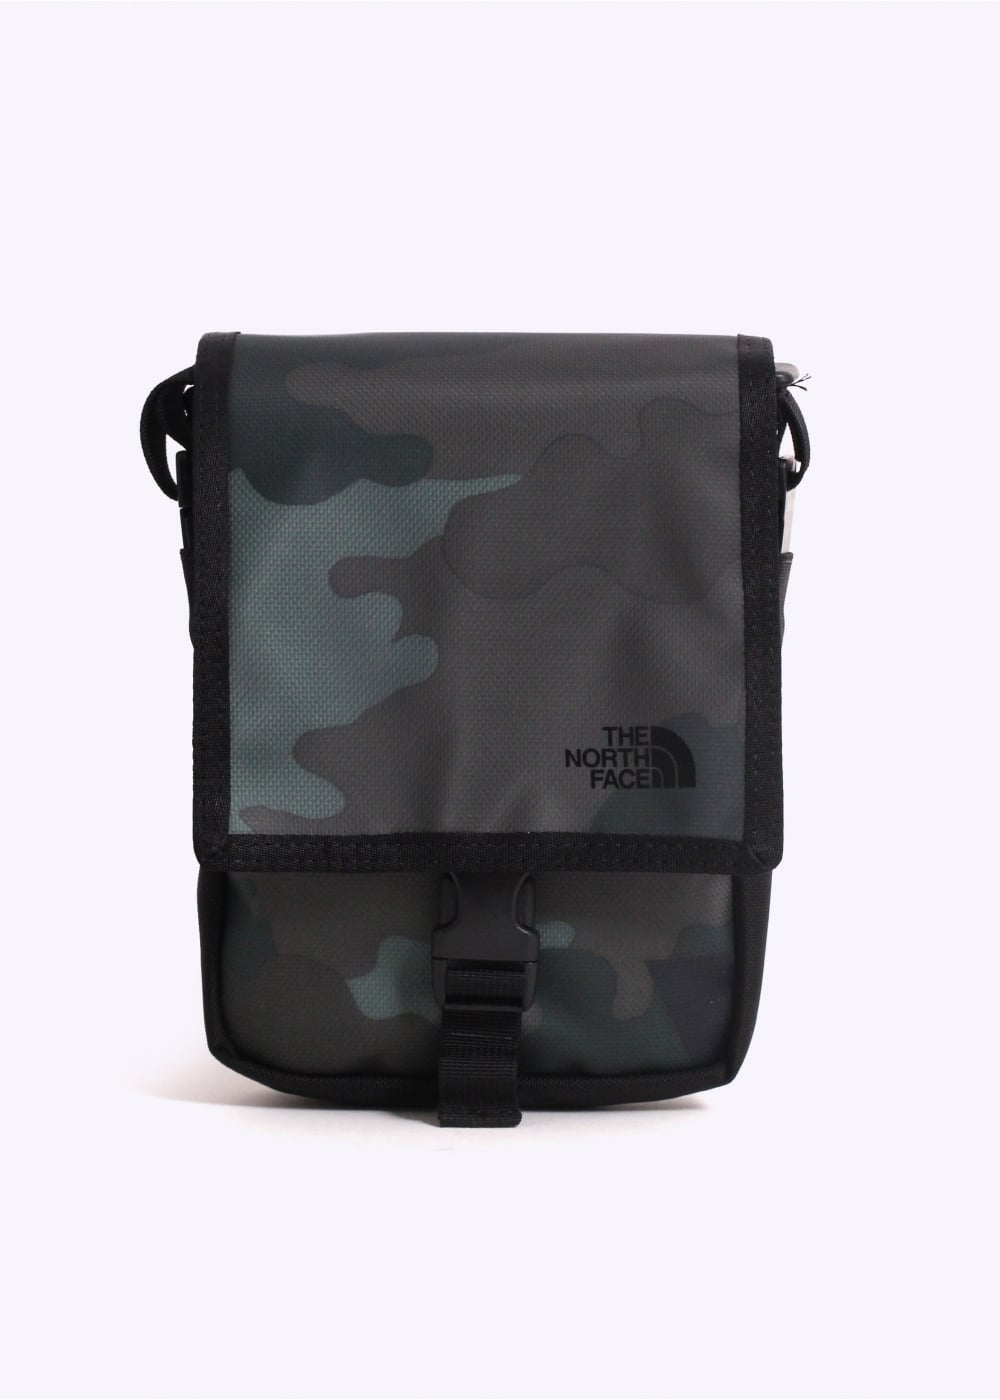 The North Face Bardu Bag - Camo   Black - Bags from Triads UK 21b354479c161